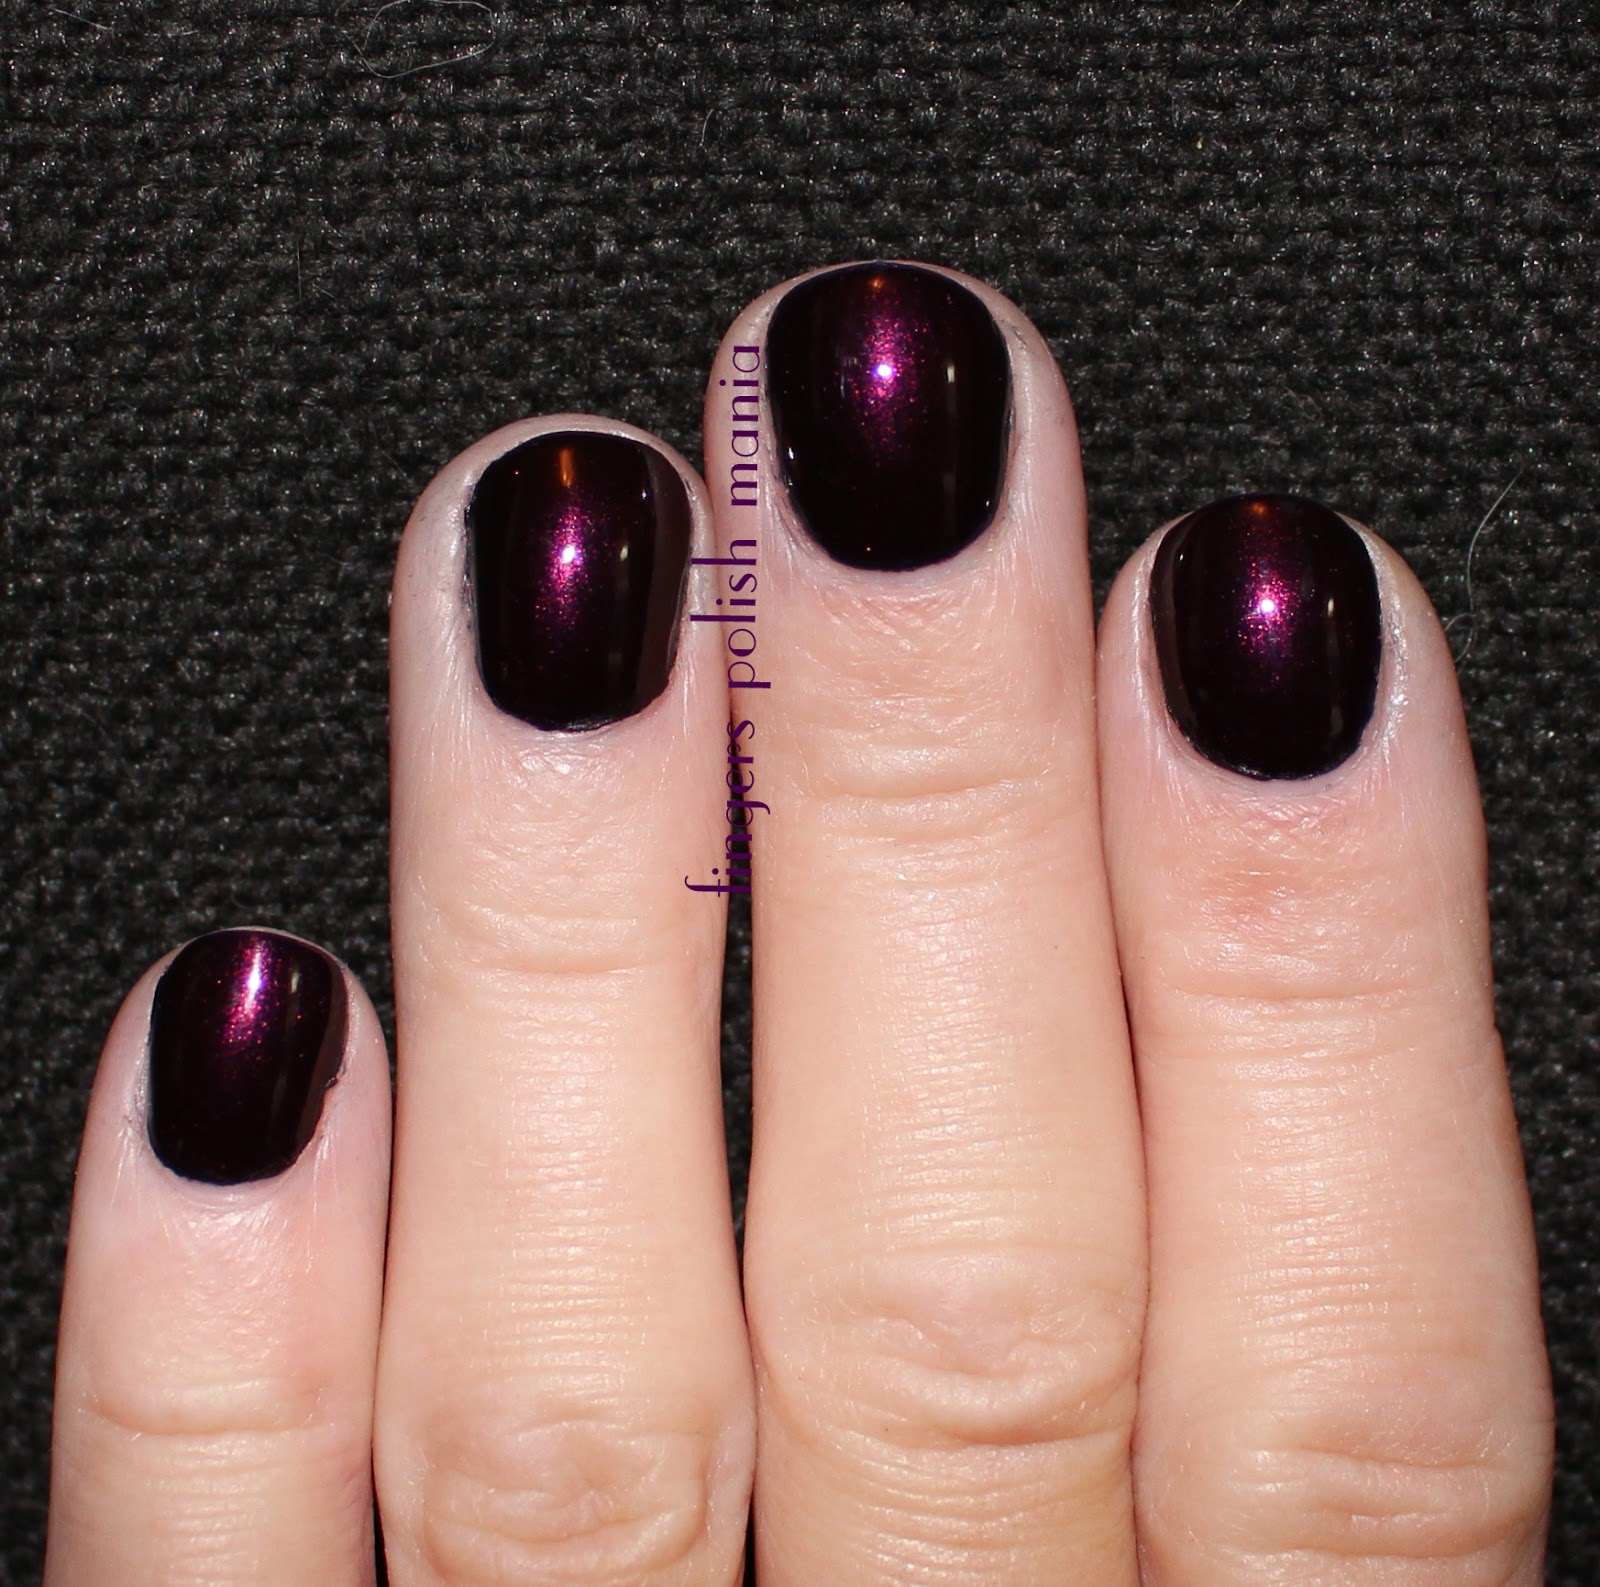 fingers polish mania: OPI Oktoberfest, Essie Alligator Purse